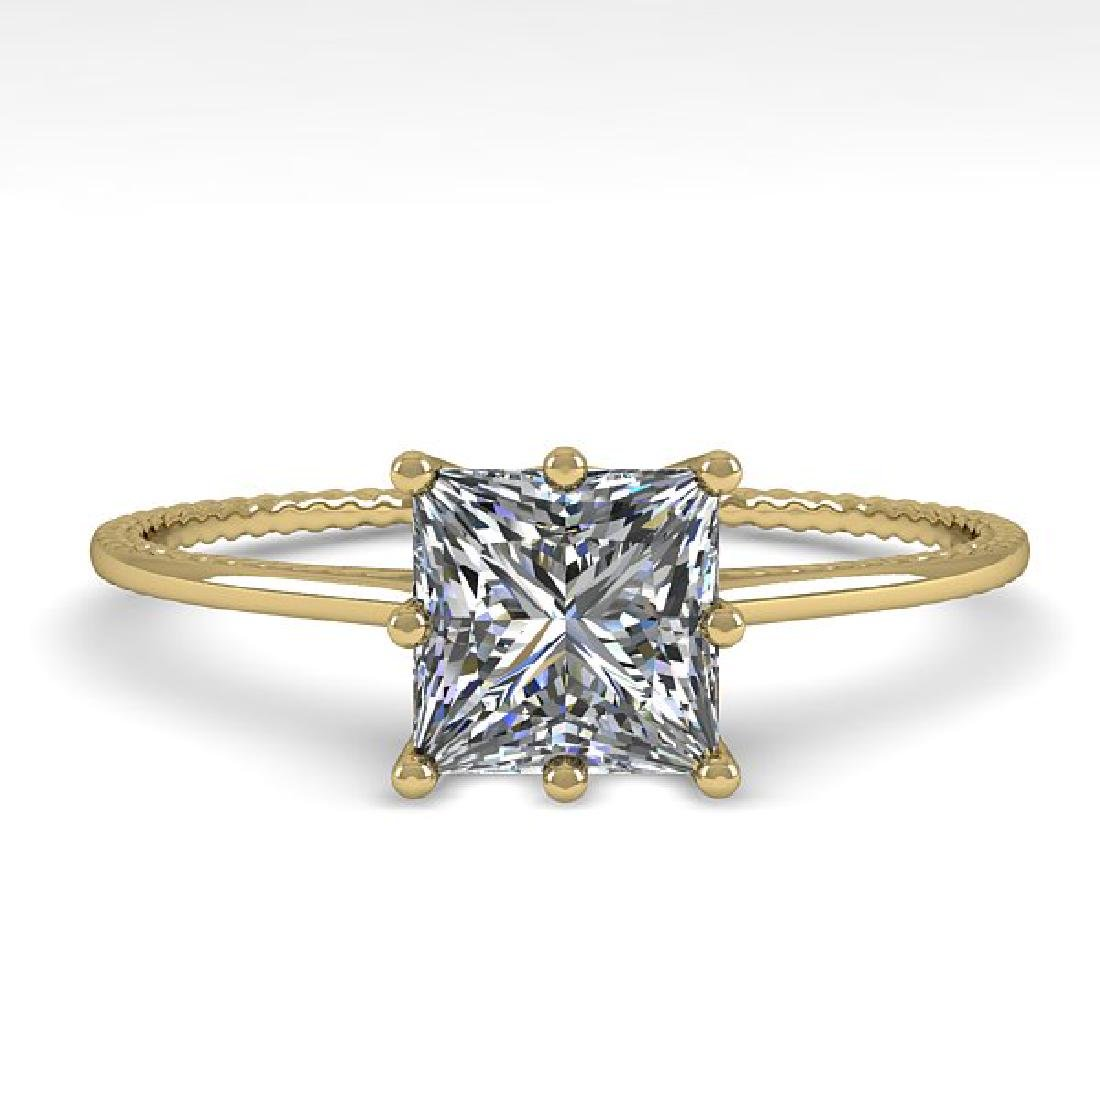 1.0 CTW VS/SI Princess Diamond Art Deco Ring 14K Yellow